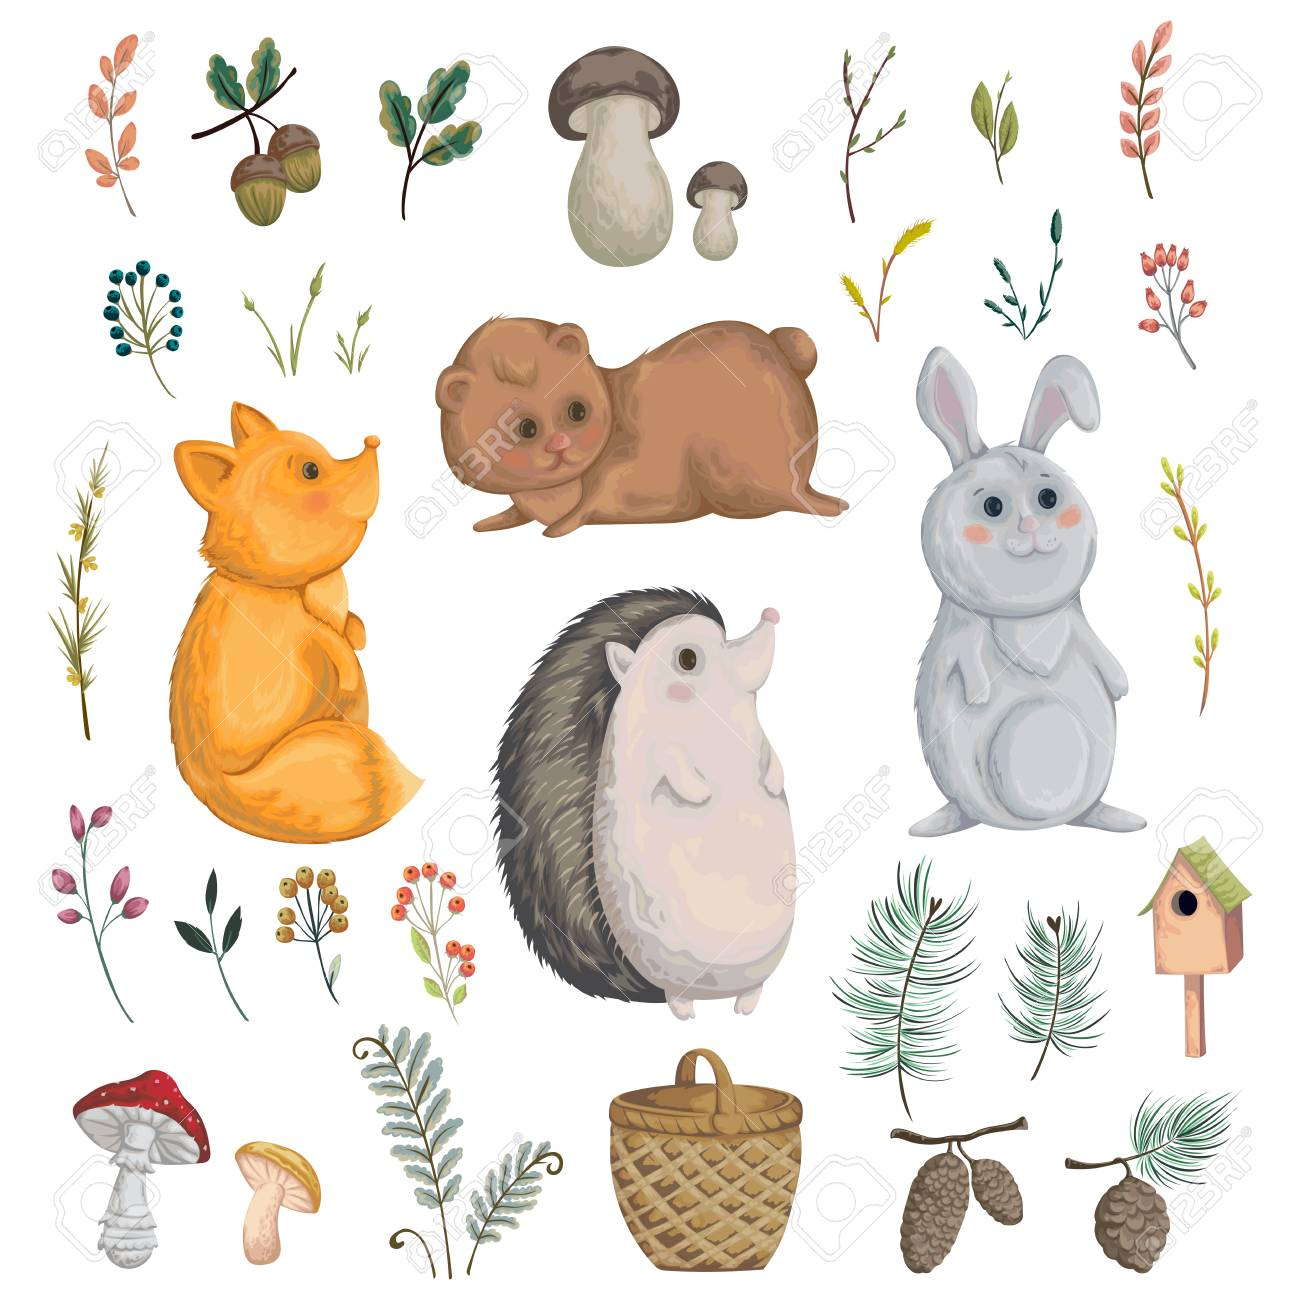 Collection of forest animals, mushroom, plant, berry, cones. Decorative elements in watercolor style for greeting card, invitation, baby shower party. Cartoon characters. Vector illustration. - 85327660